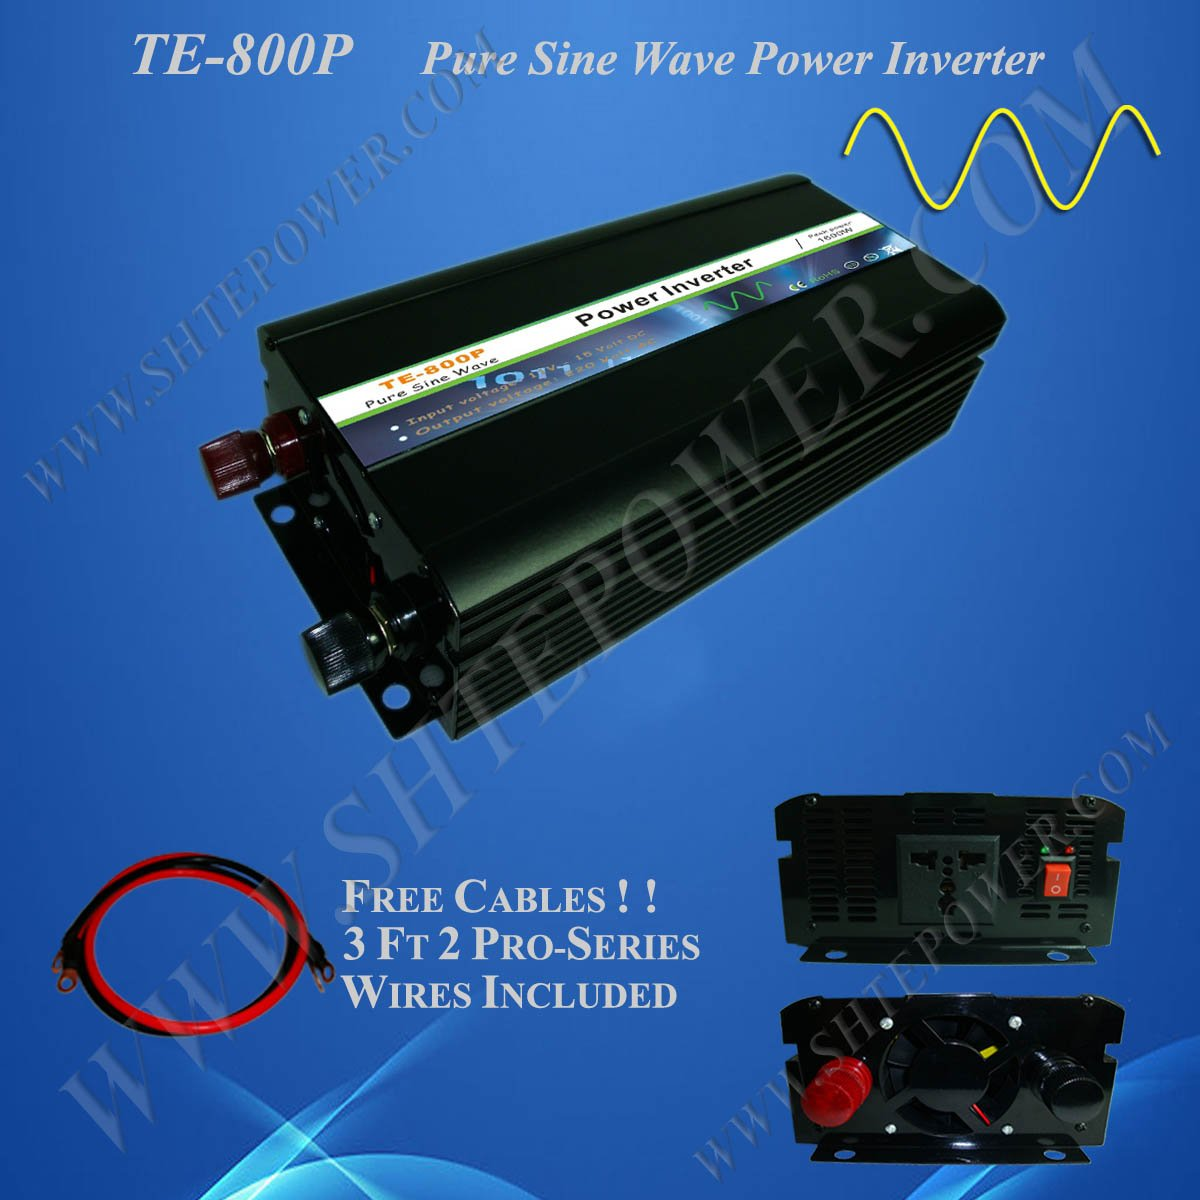 цена на Off Grid Solar Power Inverter, 800w 24vdc to 120vac inverter, Pure Sine Wave Power Invertor